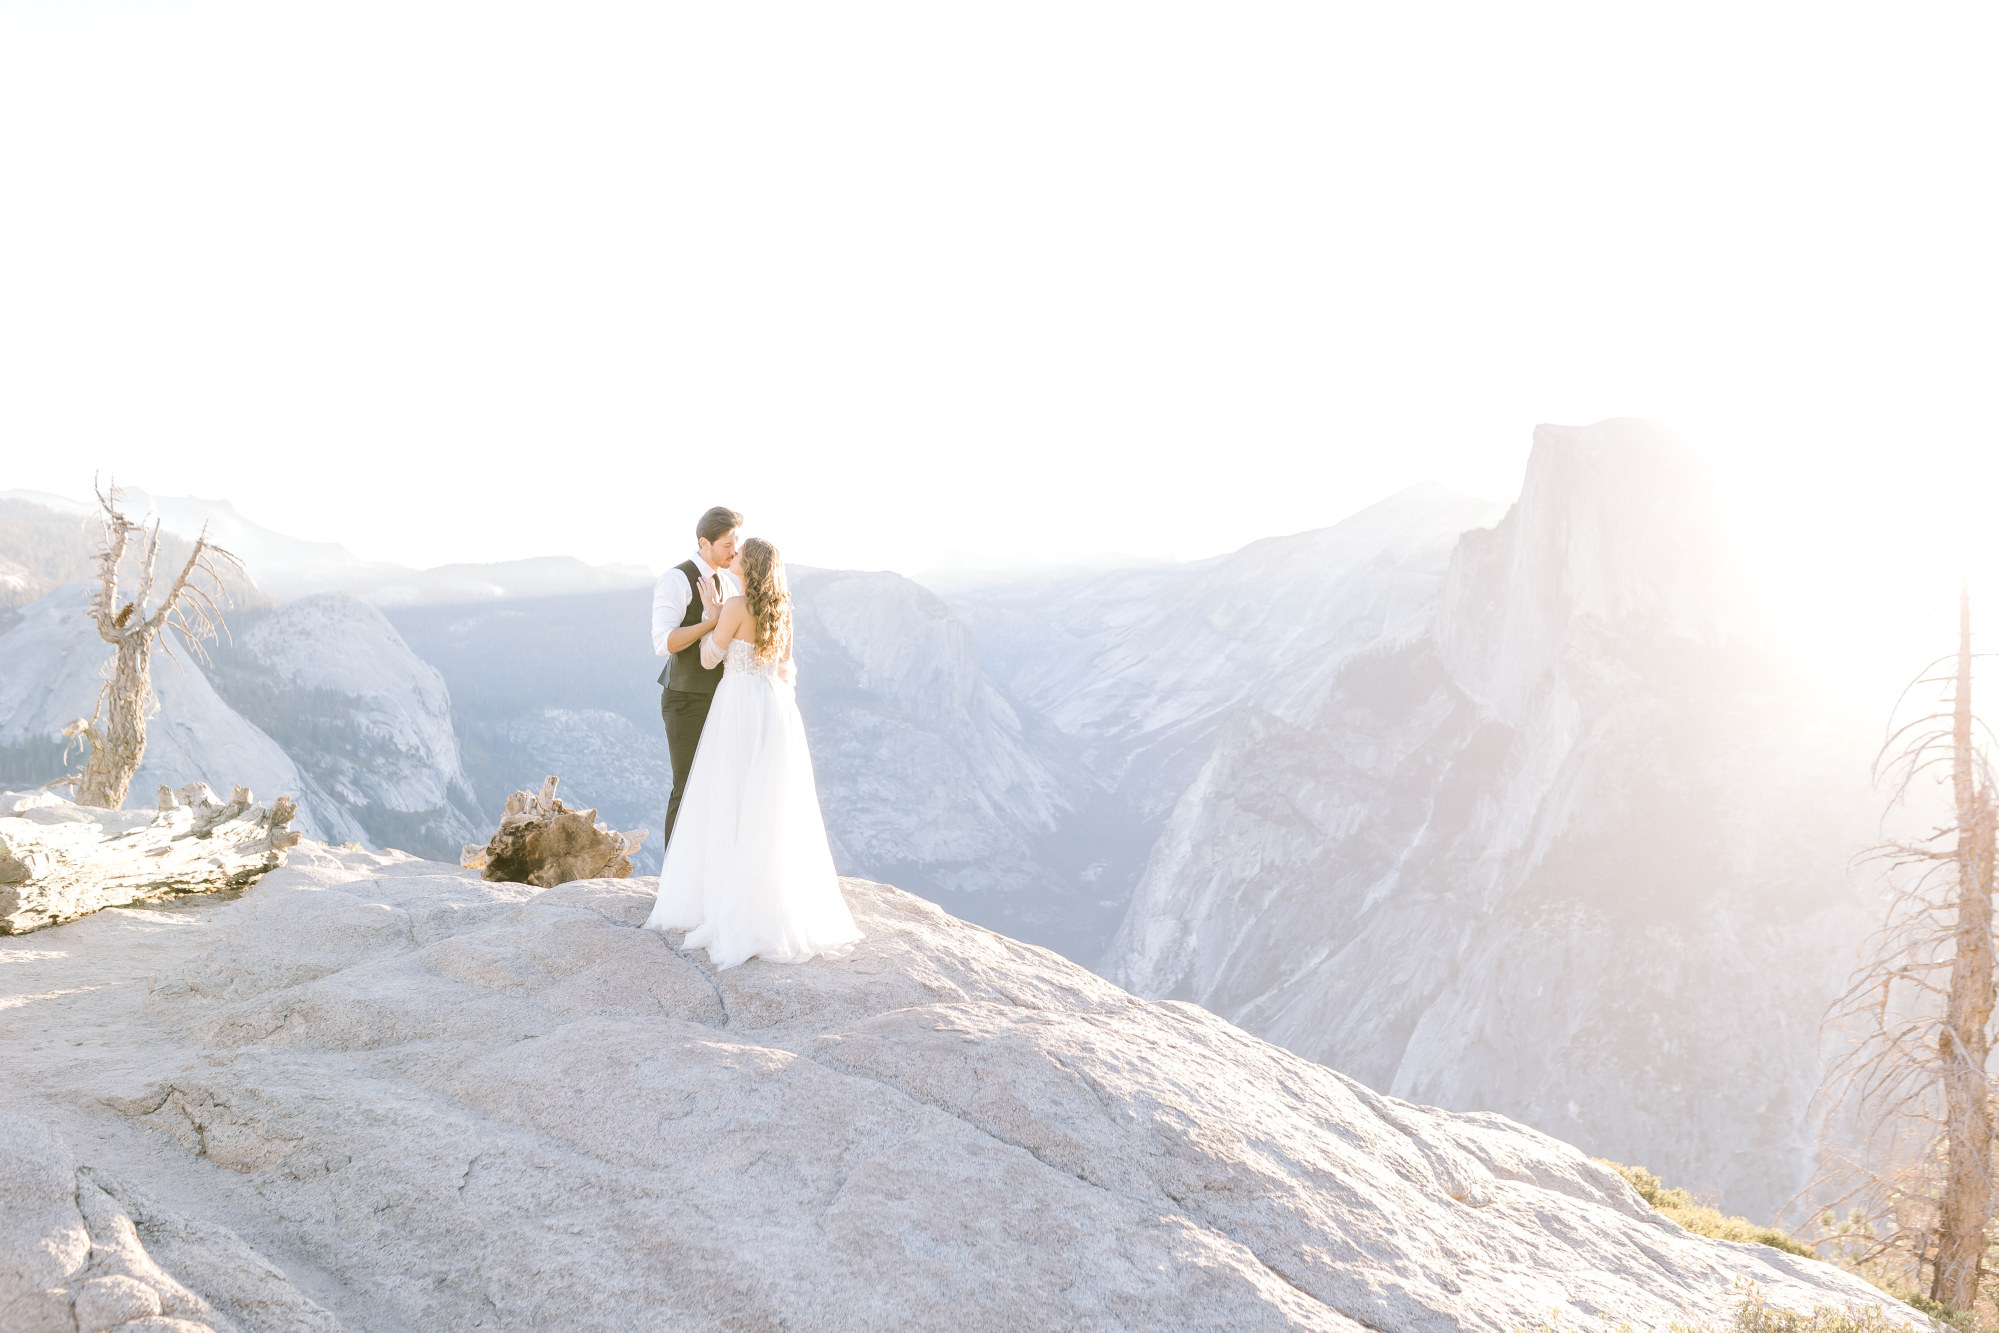 Hannah Way Photography - Dallas wedding photographer - luxury weddings - luxury wedding photographer - dfw wedding photographer - best wedding photographer - Dallas best wedding photographer - elopement - elopement wedding photographer - elopement Wedding - Yosemite - Yosemite elopement - Yosemite elopement photographer - destination wedding photographer - glacier point - glacier point Yosemite